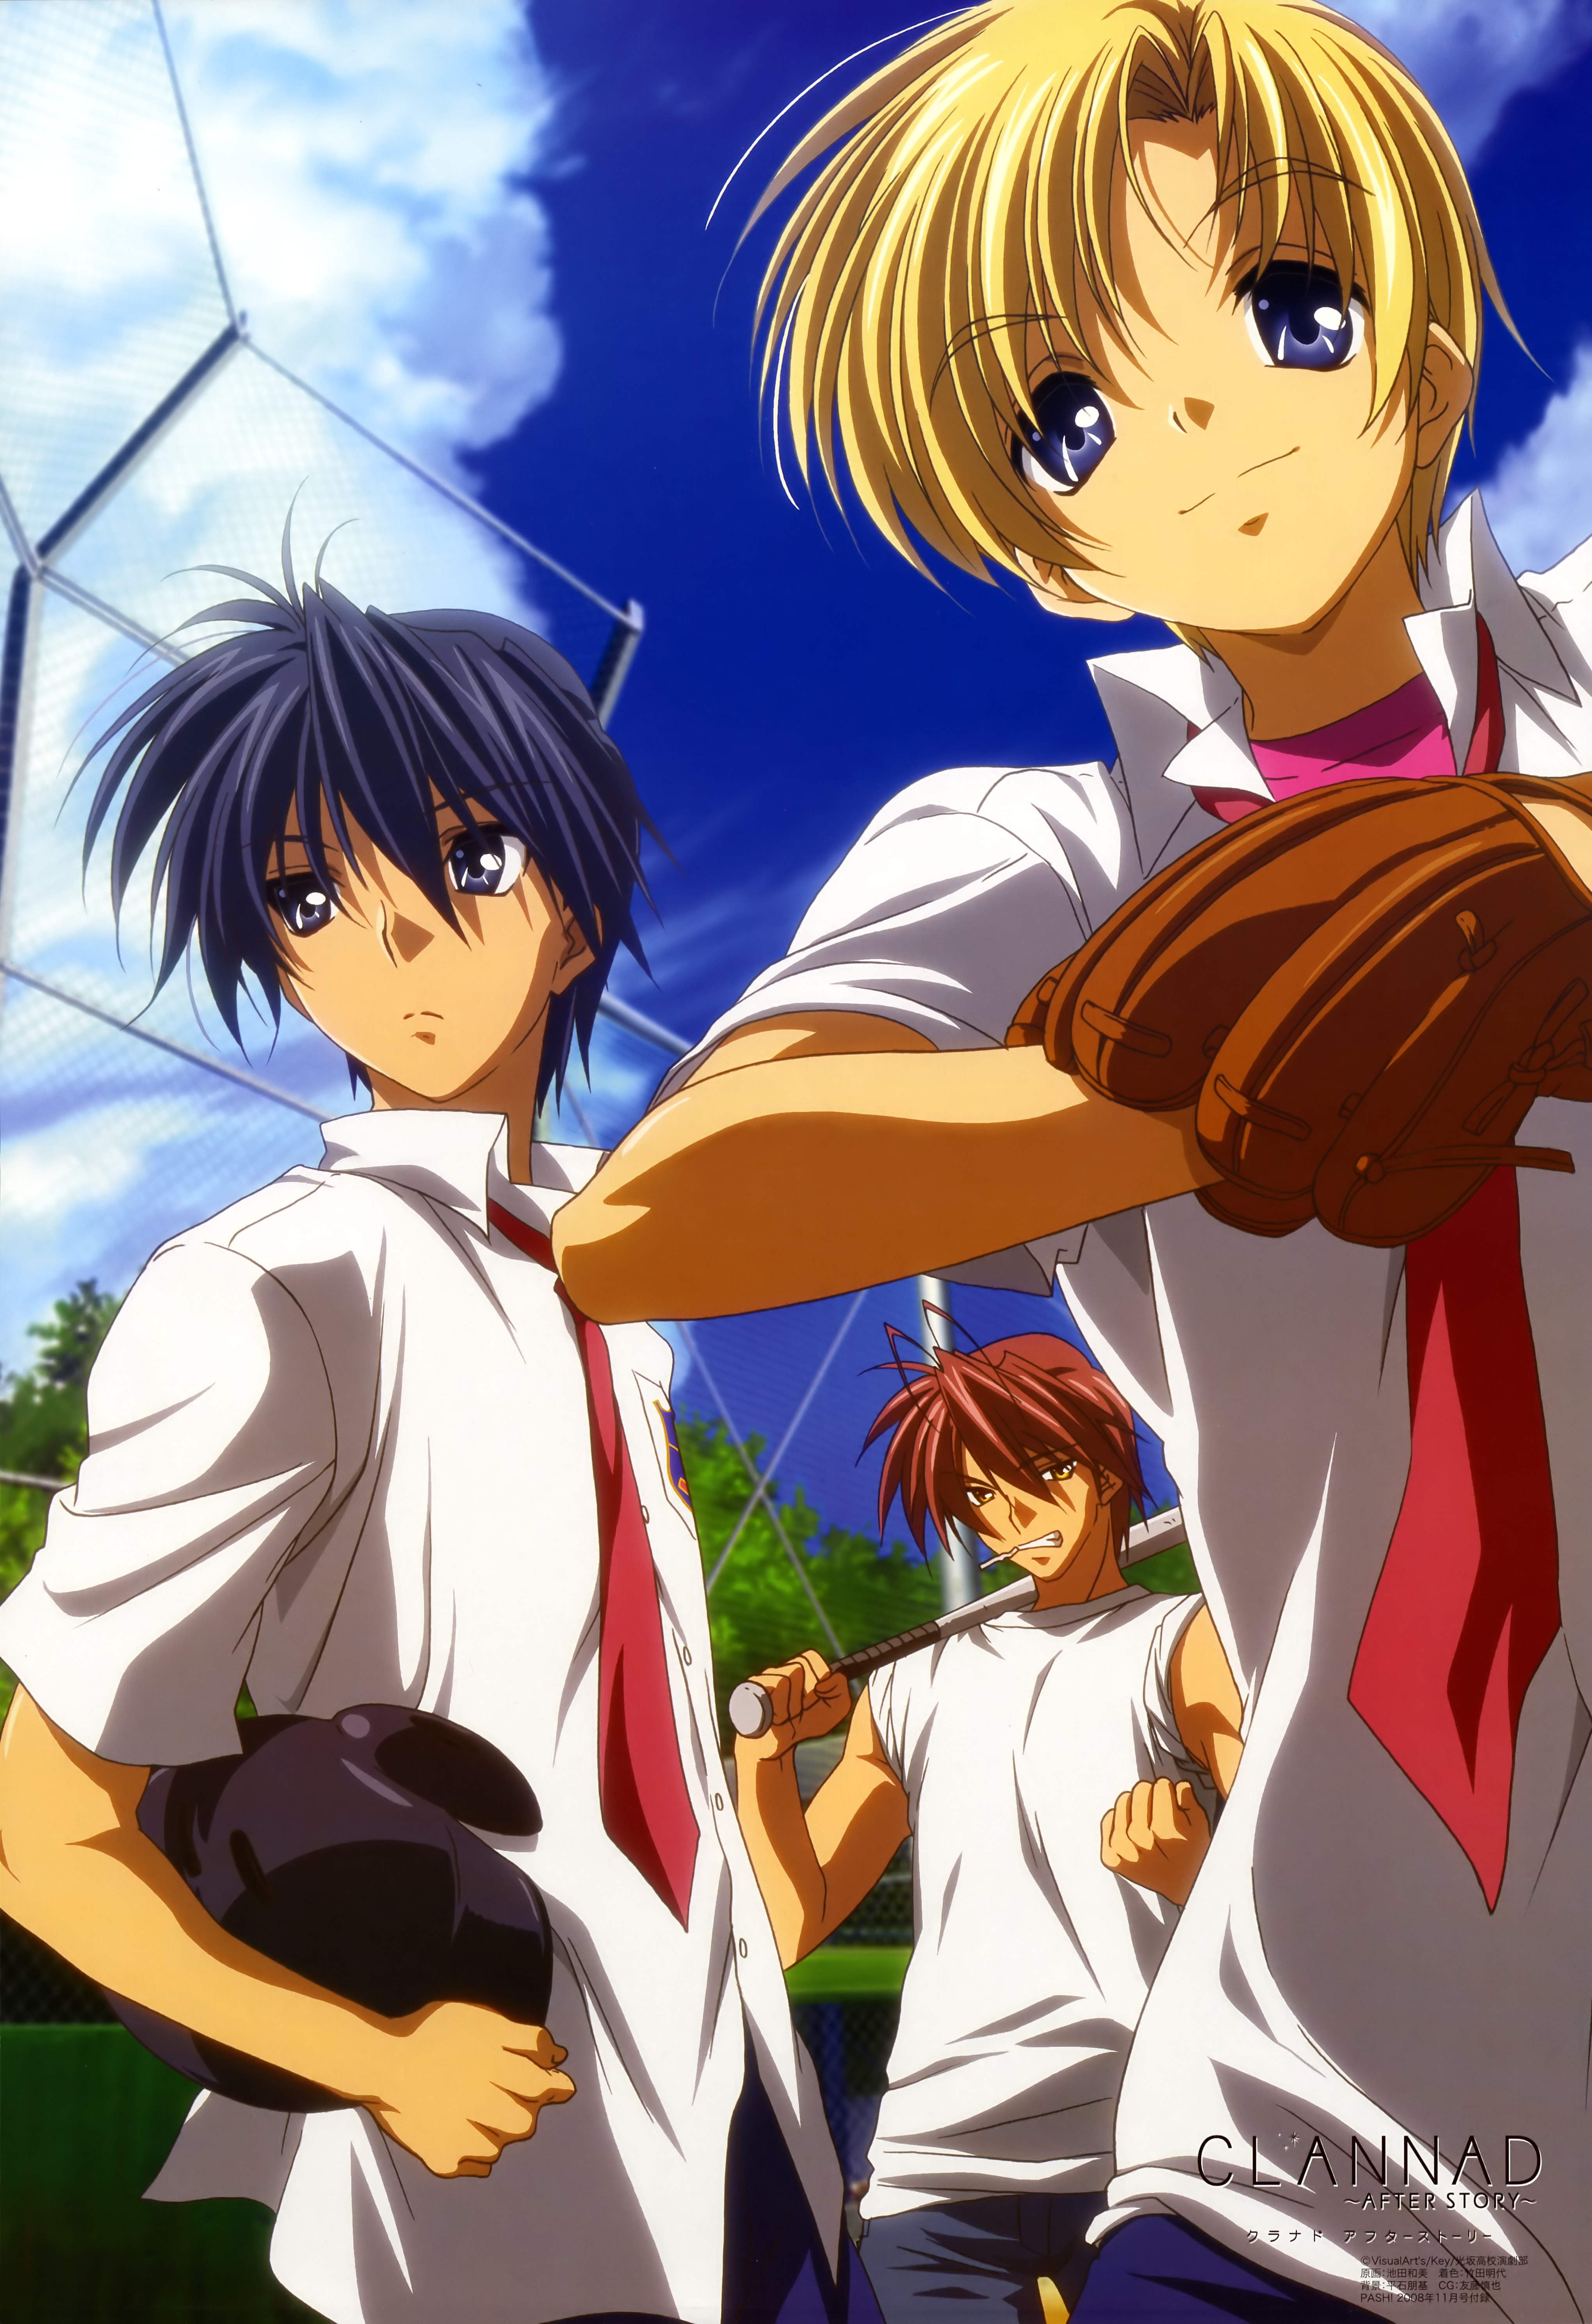 Clannad Clannad After Story Minitokyo